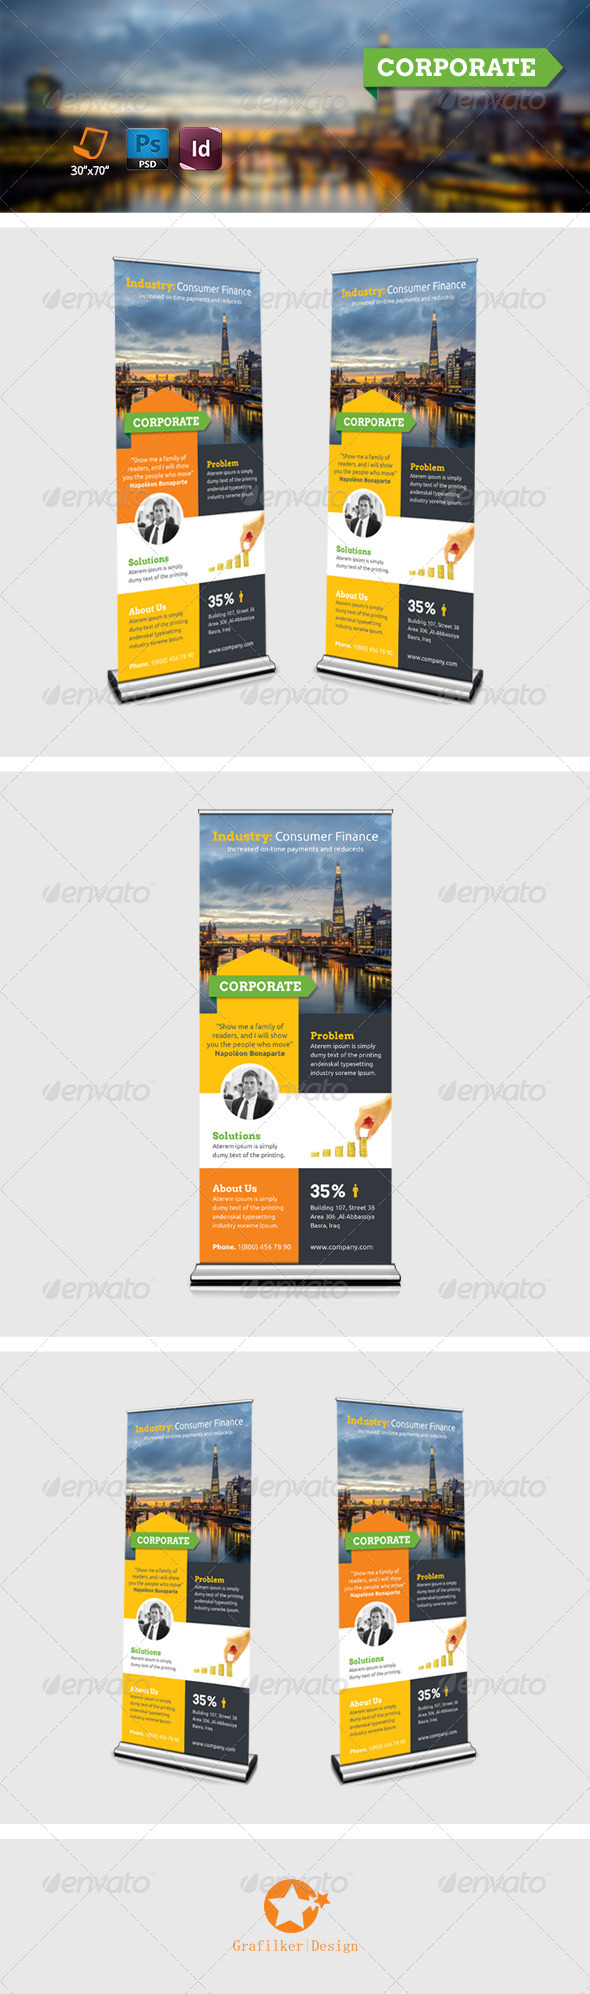 GraphicRiver Corporate Roll-Up Templates 8045004